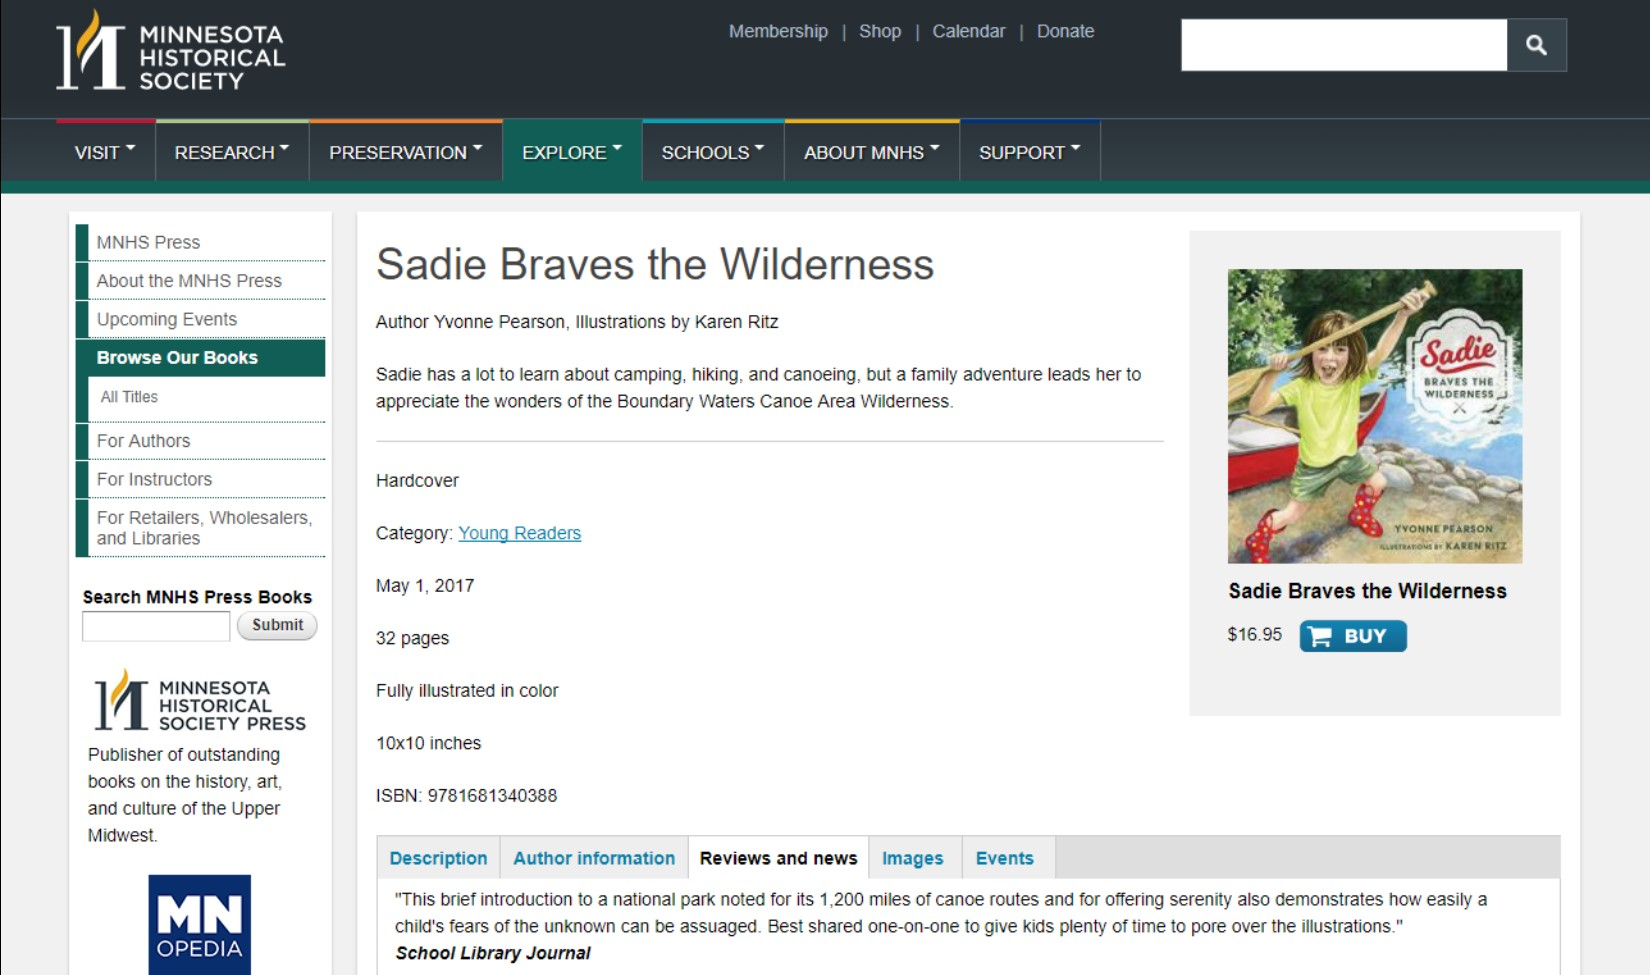 Sadie Braves the Wilderness image.jpg